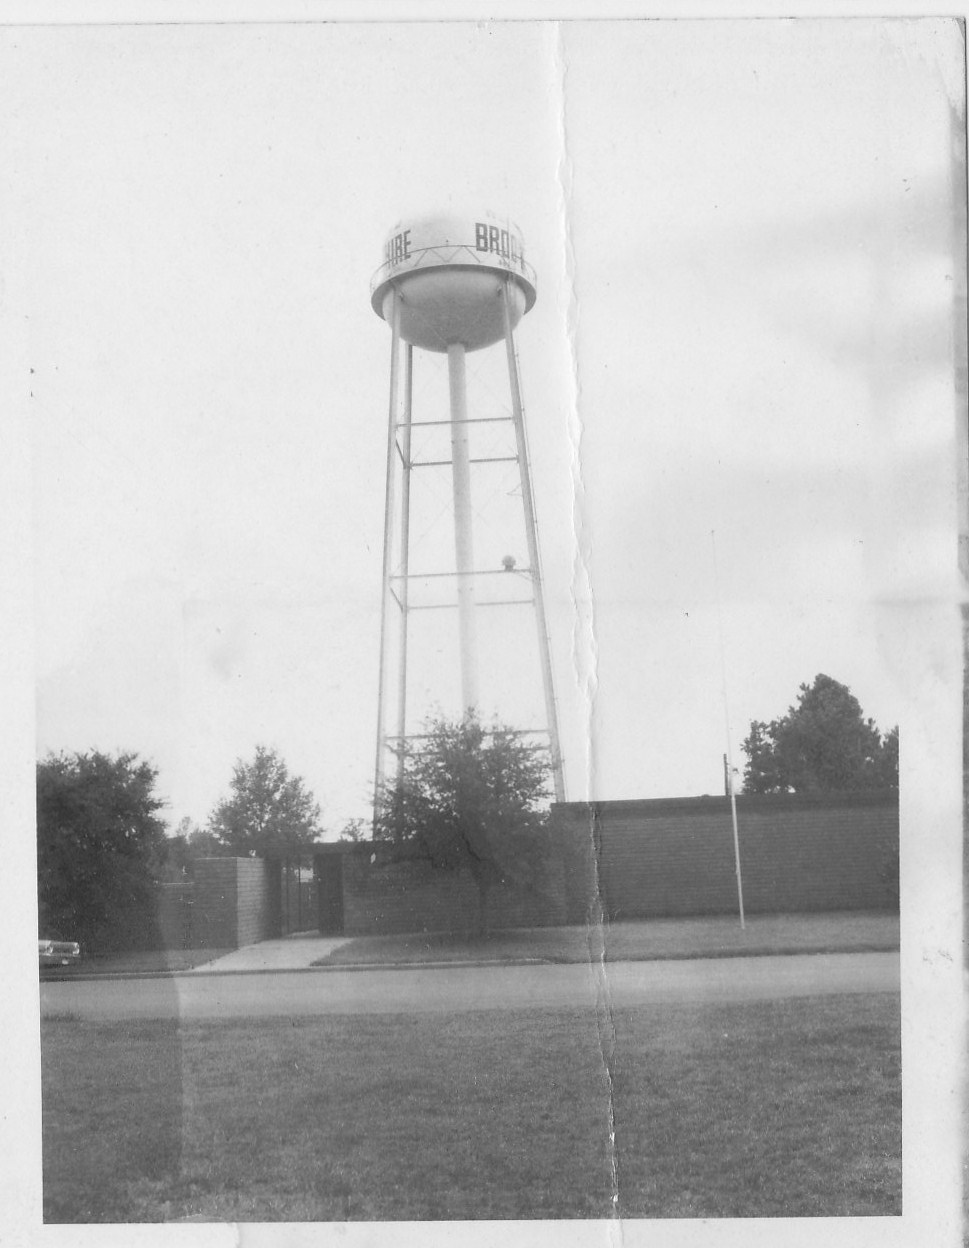 Brookshire Water Tower late 1950